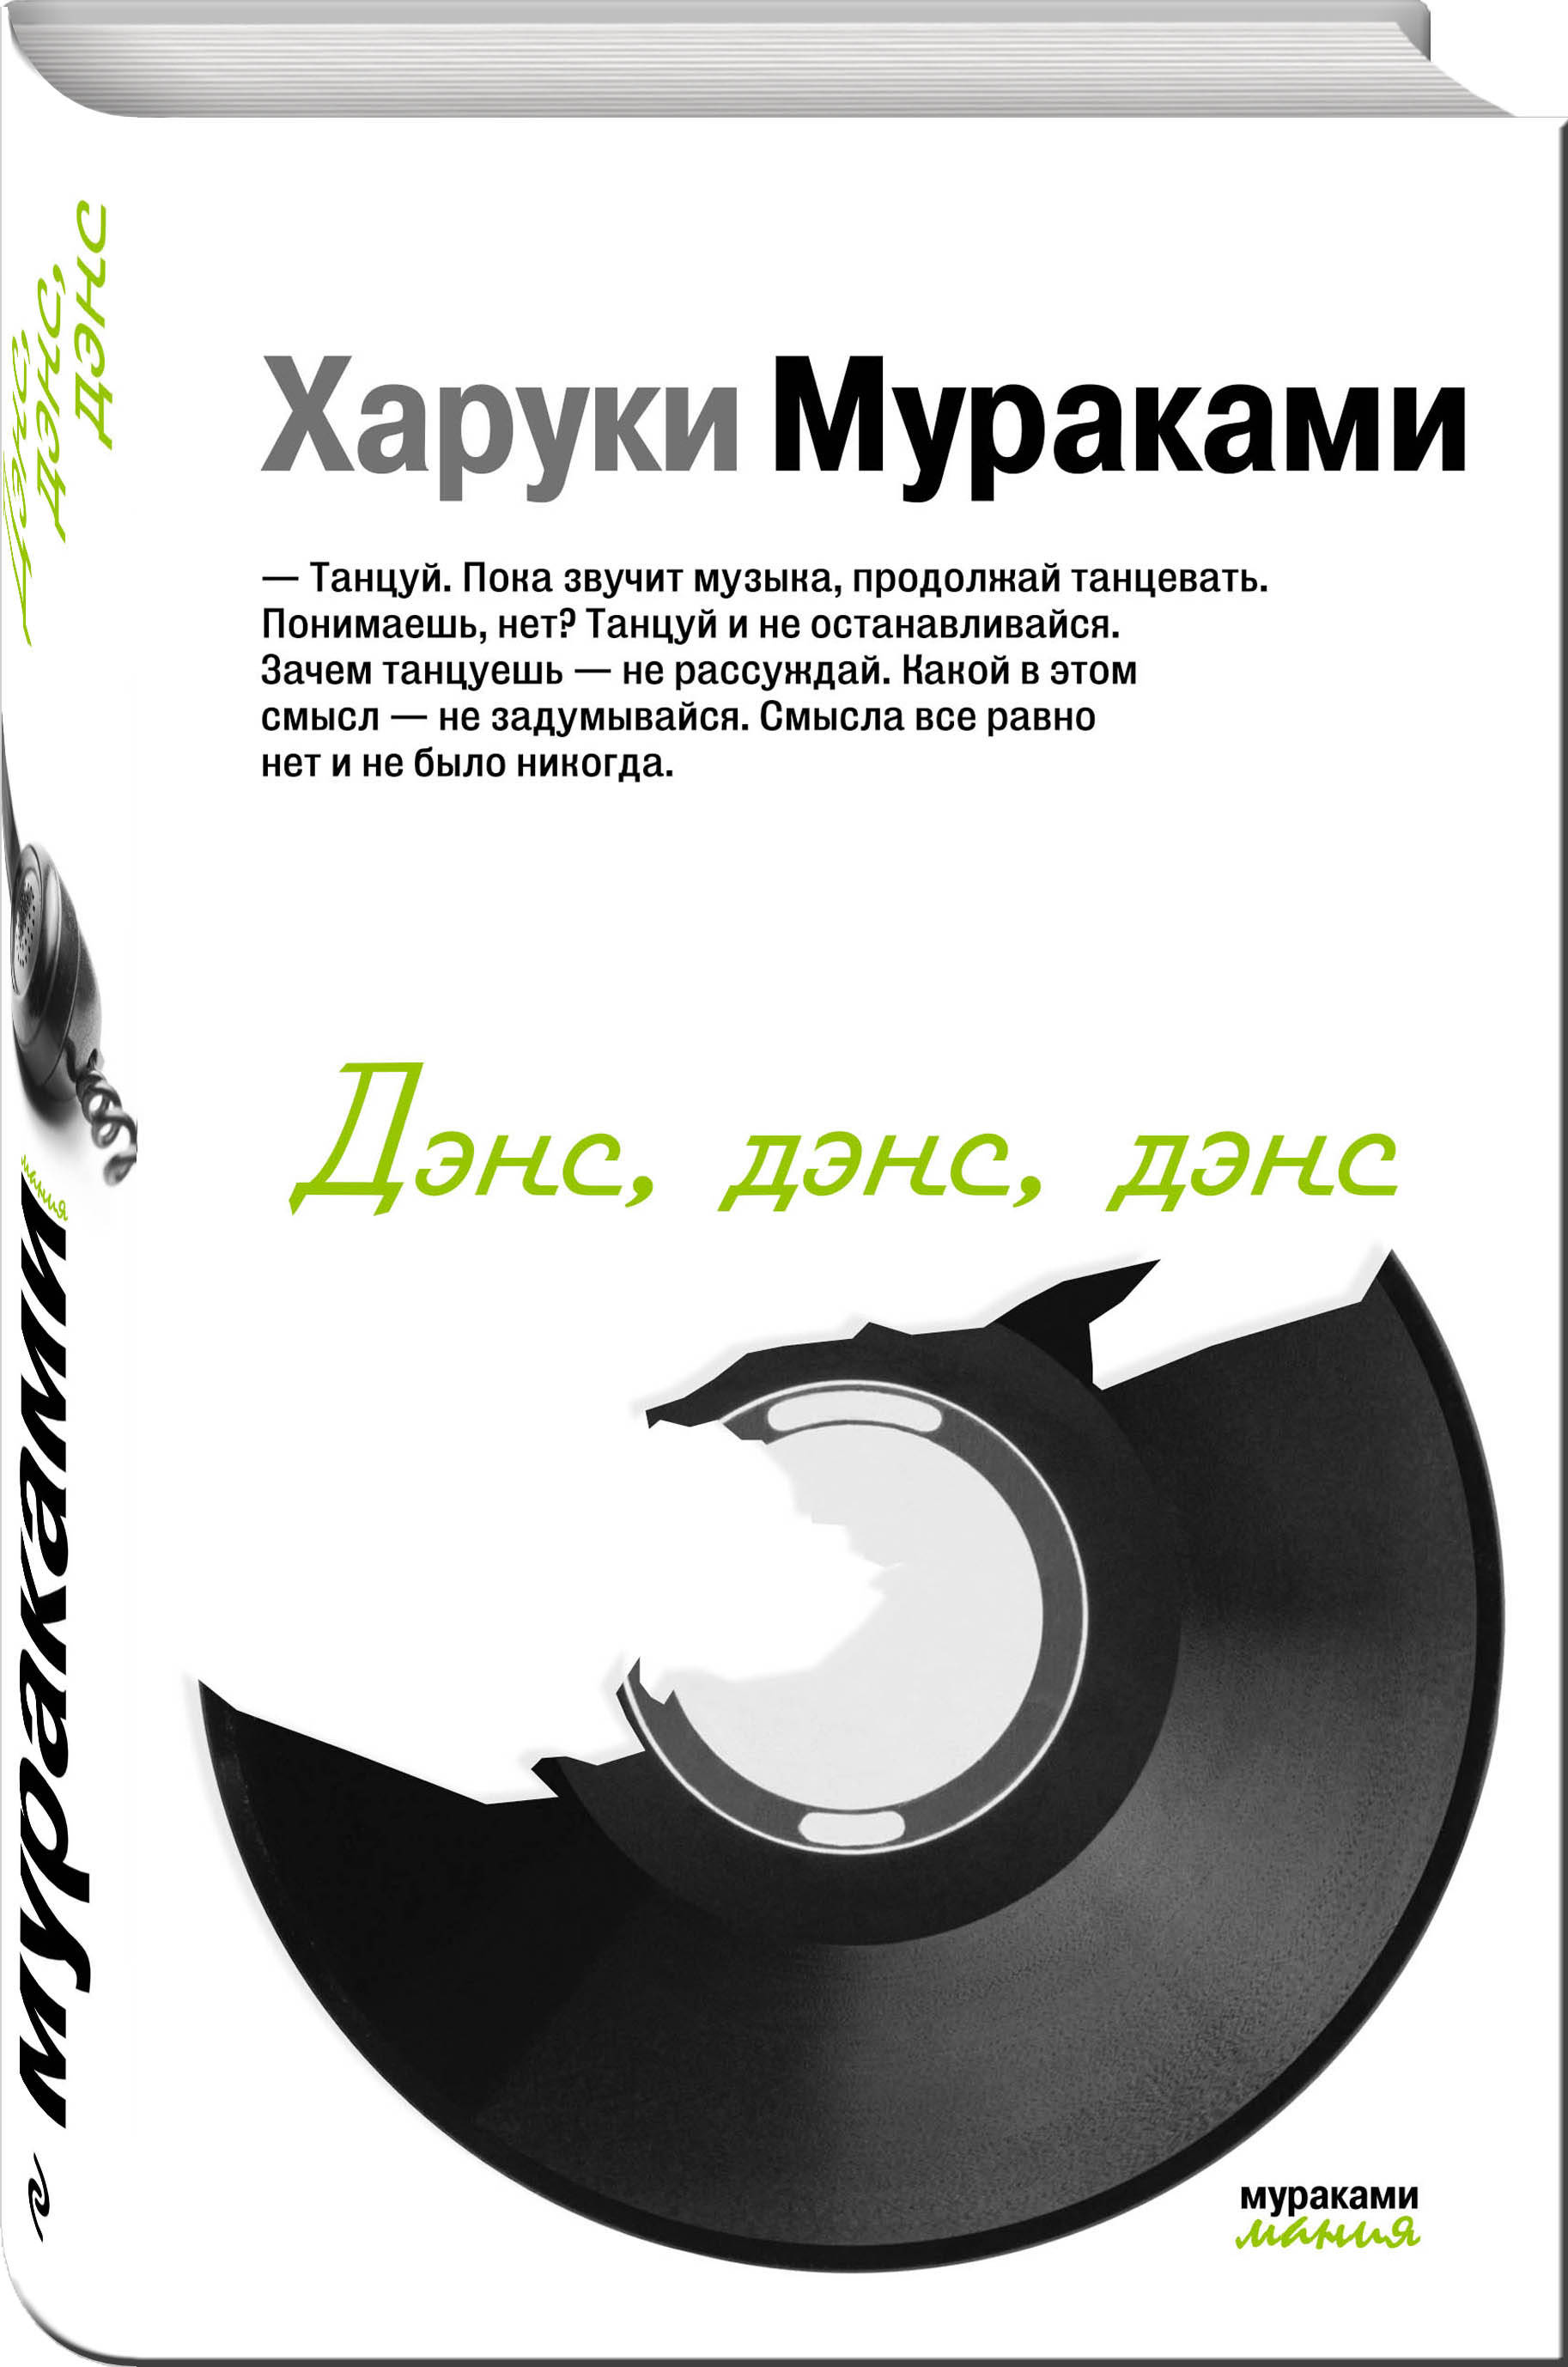 Мураками Х. Дэнс, дэнс, дэнс ISBN: 978-5-699-32007-3 удилище фидерное mikado ultraviolet heavy feeder 390 до 120гр карбон mx 9